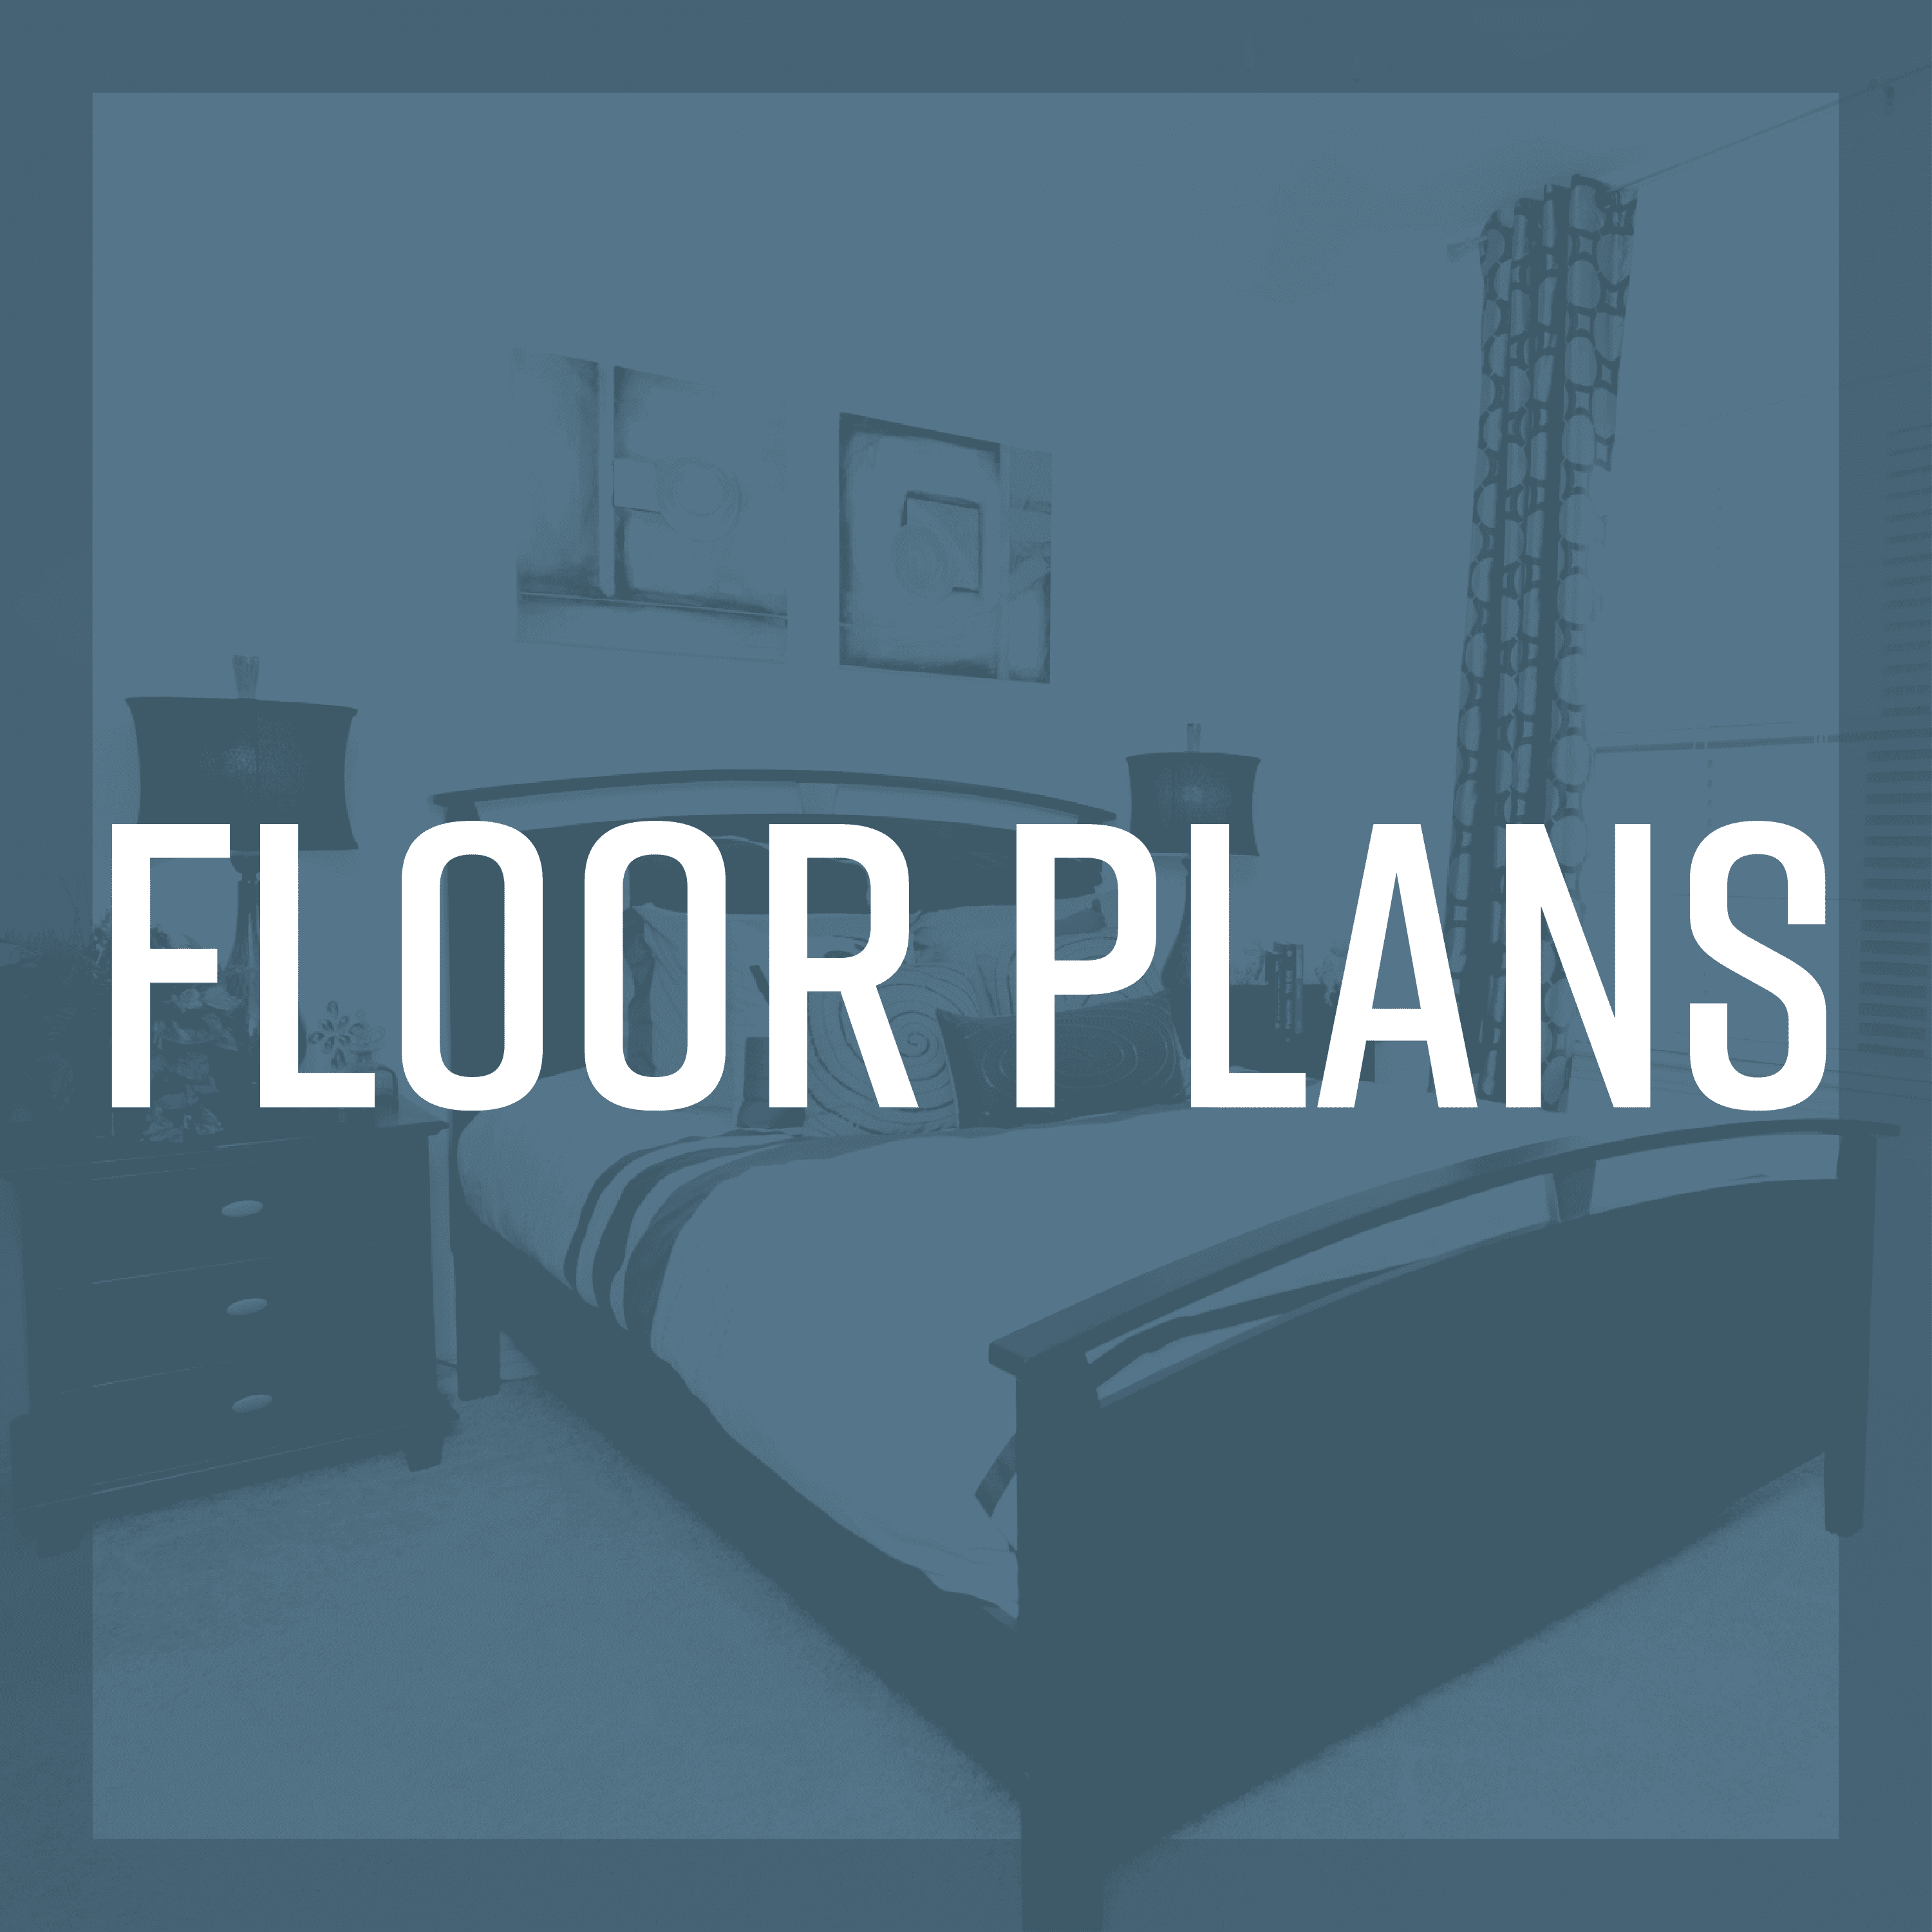 Floor plans at 23Hundred @ Ridgeview in Plano, Texas